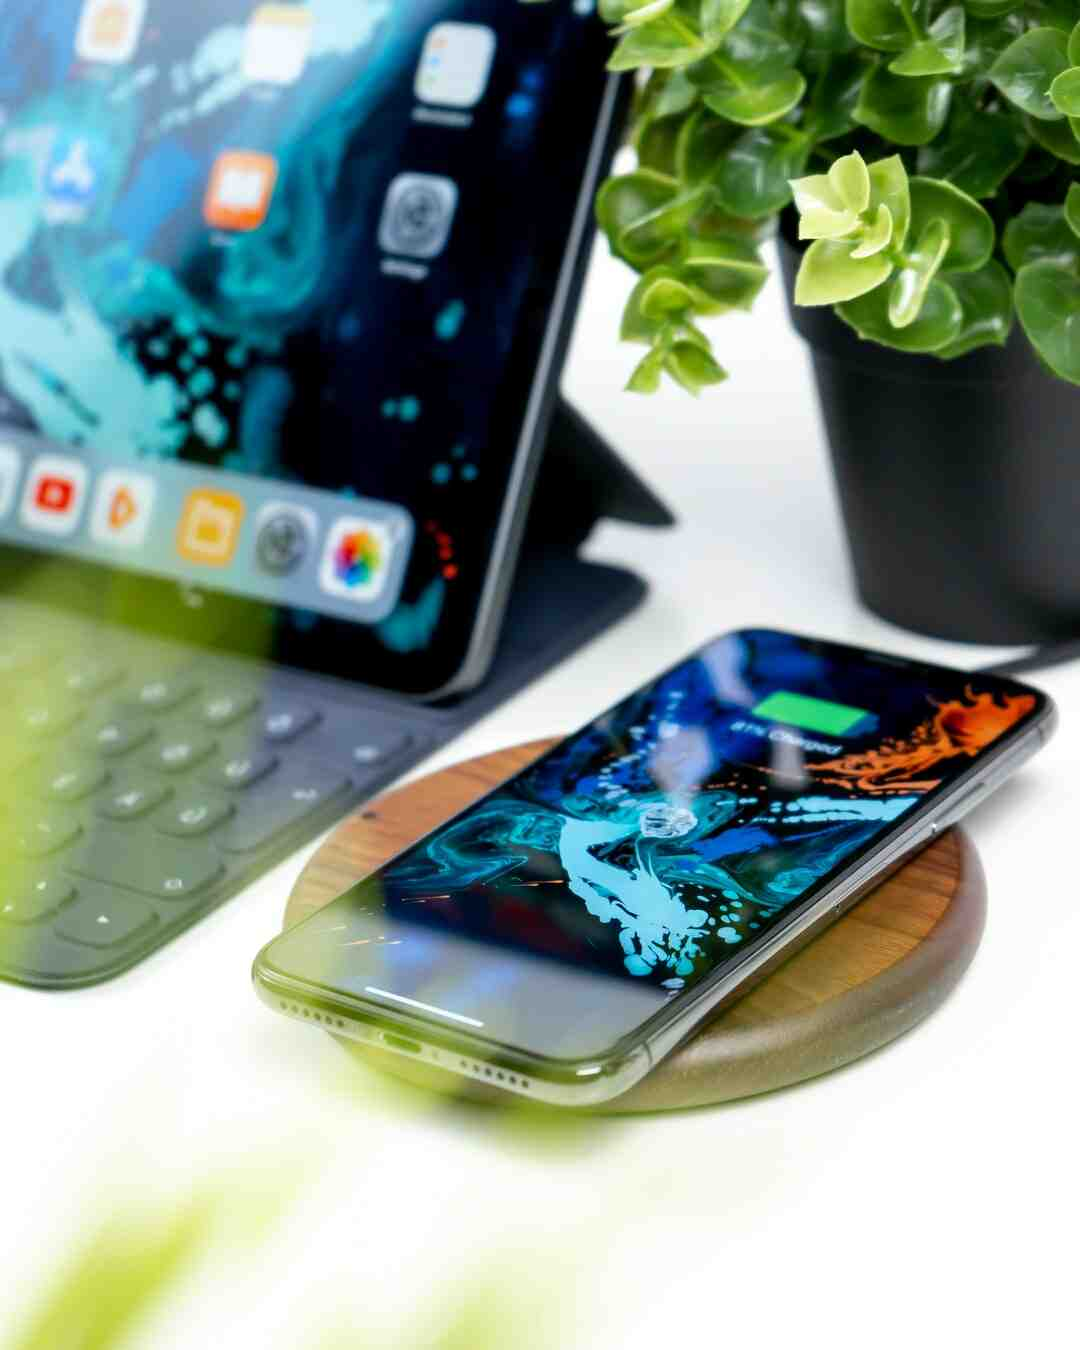 How do wireless charging works